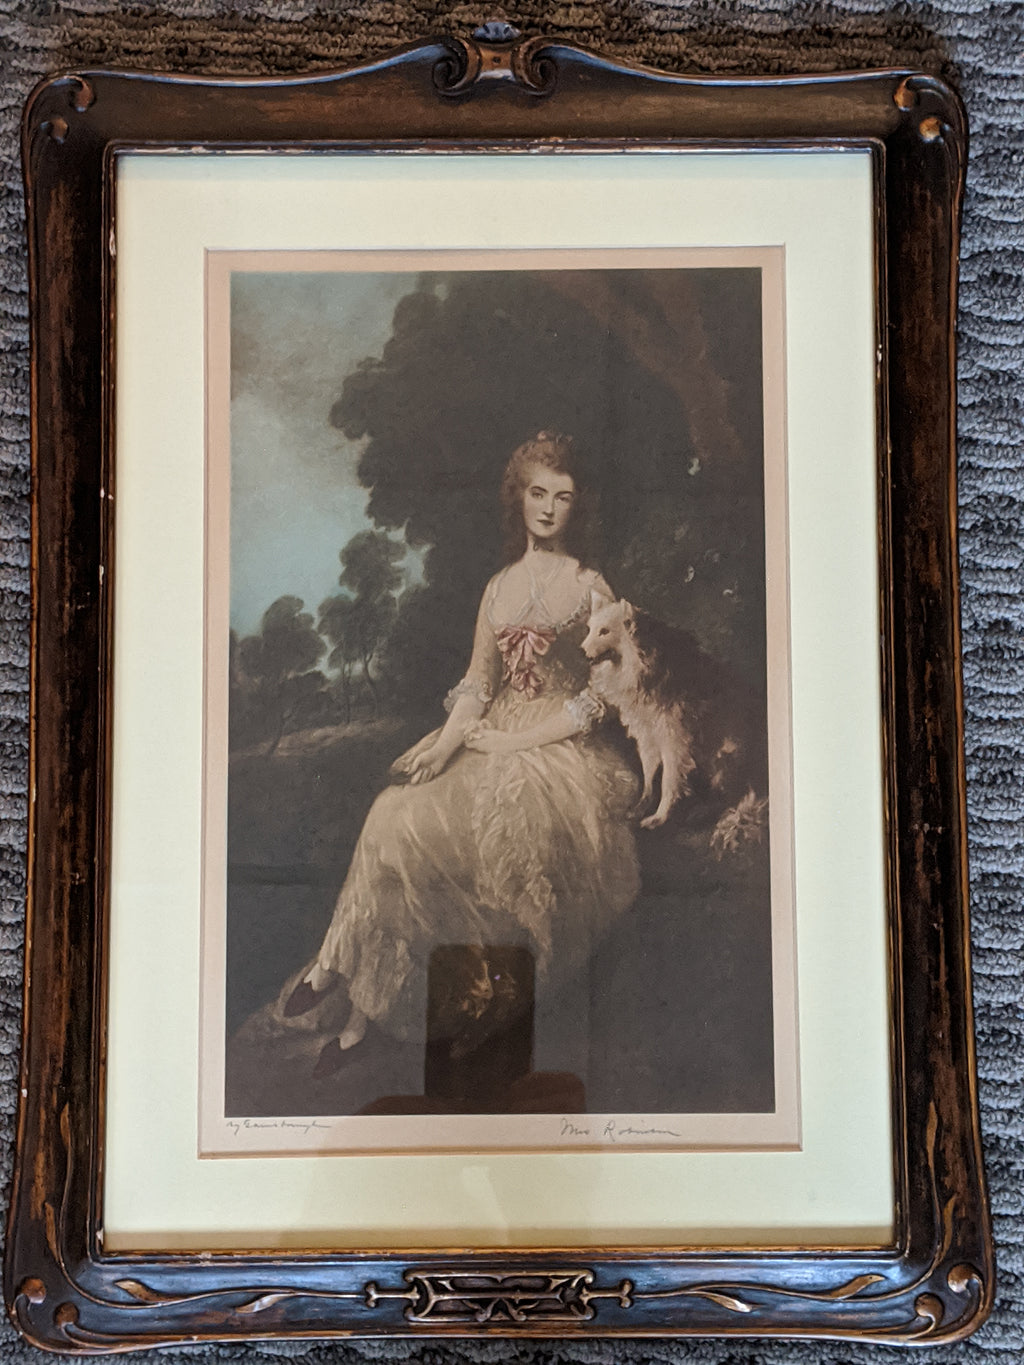 Antique Mrs. Robinson print in wooden frame